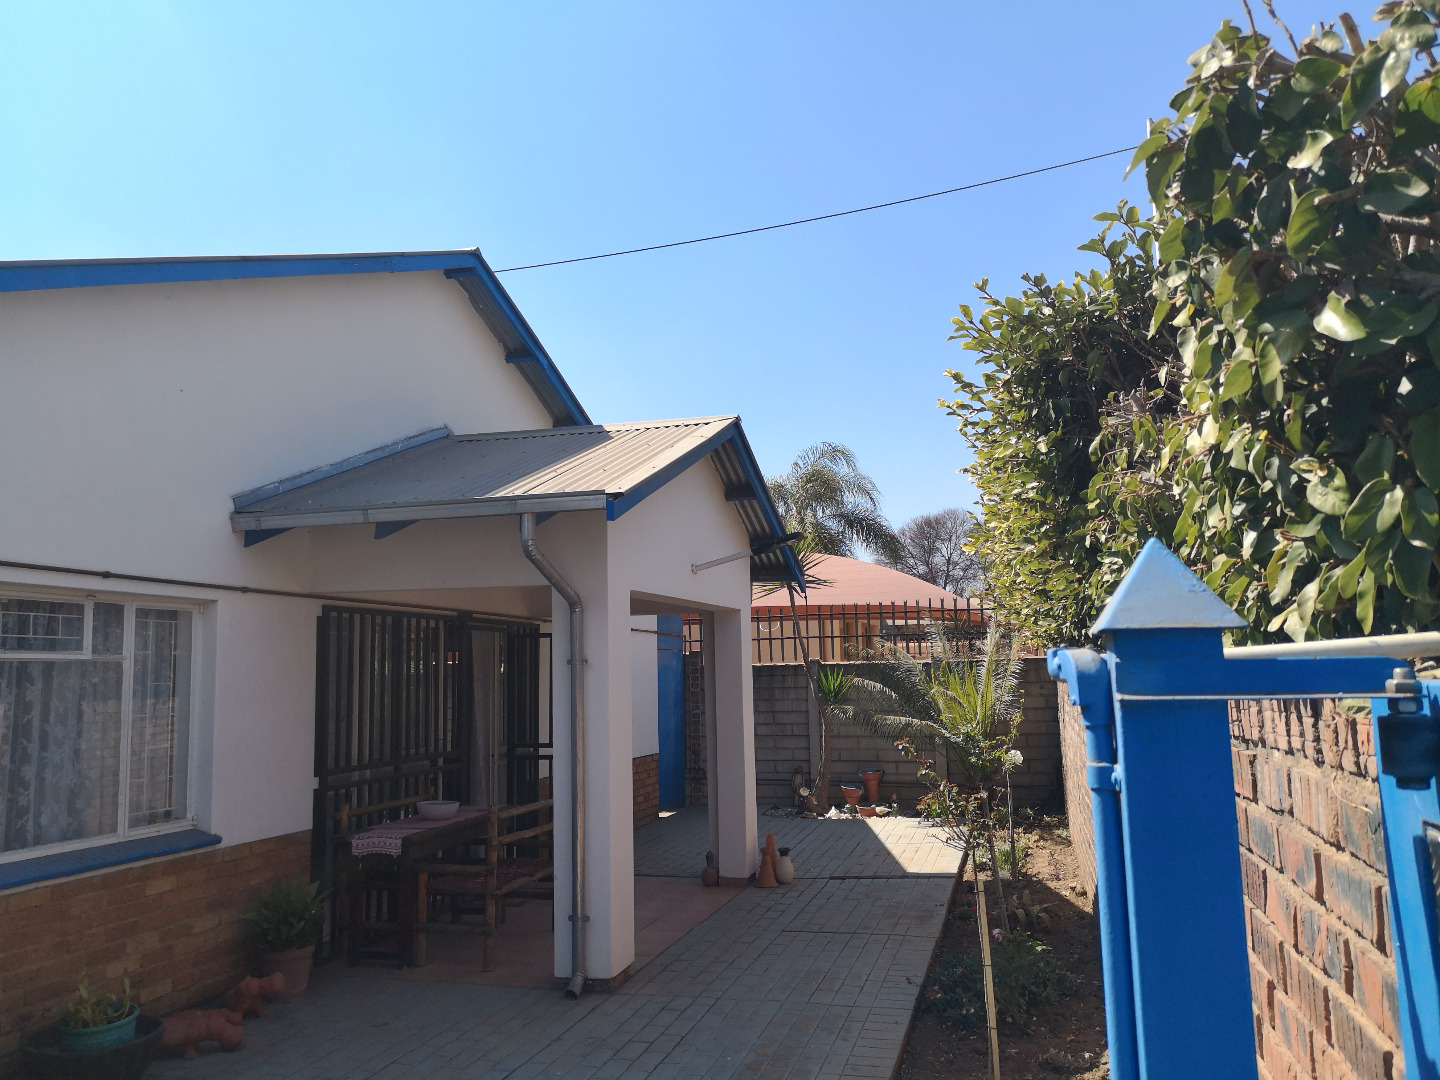 7 Bedroom House For Sale in Capital Park